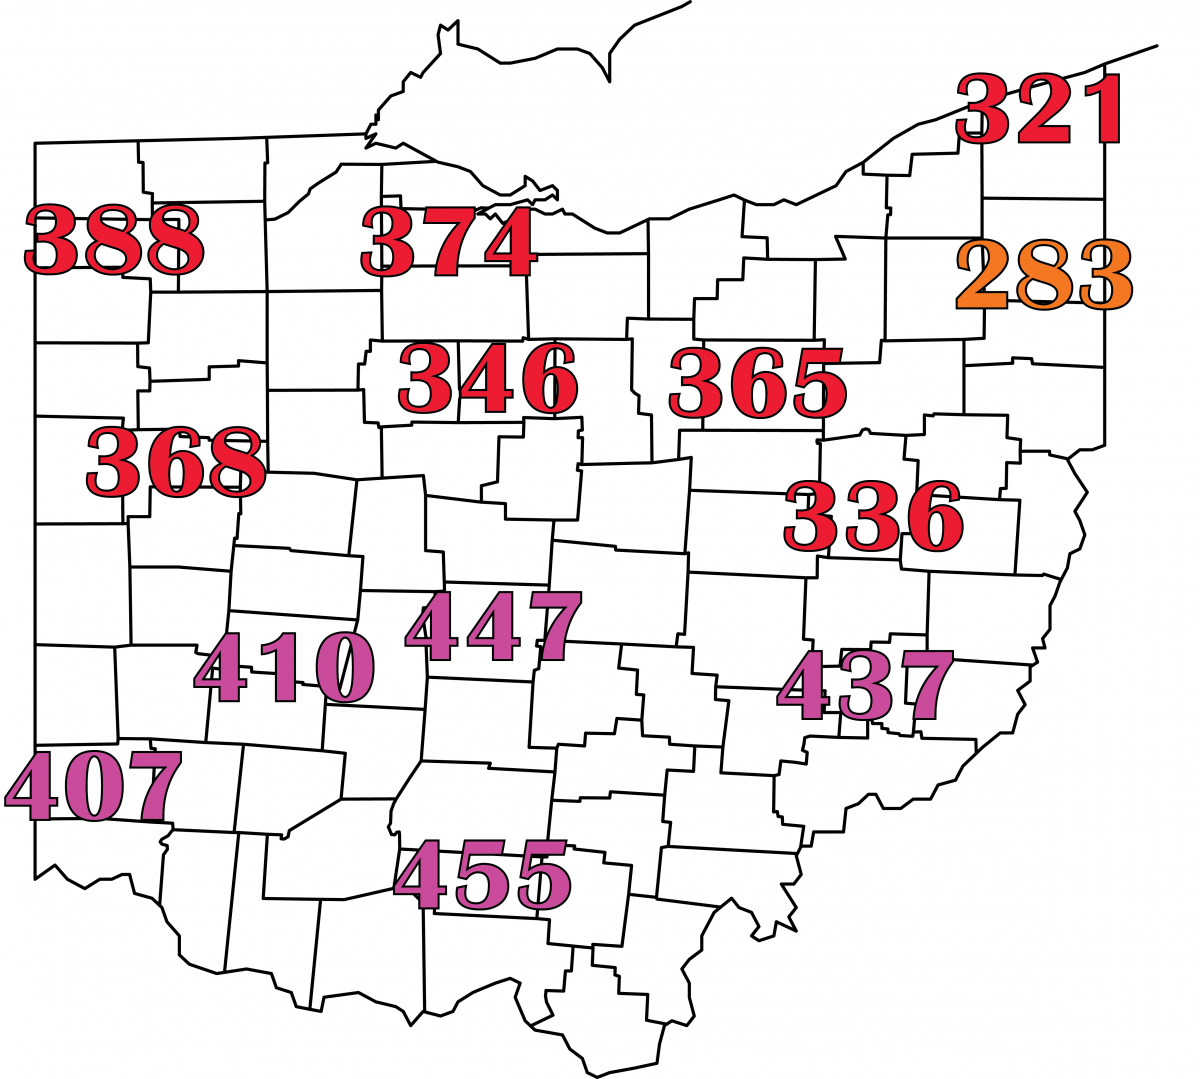 Accumulated growing degree days for alfalfa weevil in Ohio, January 1 to May 2, 2021